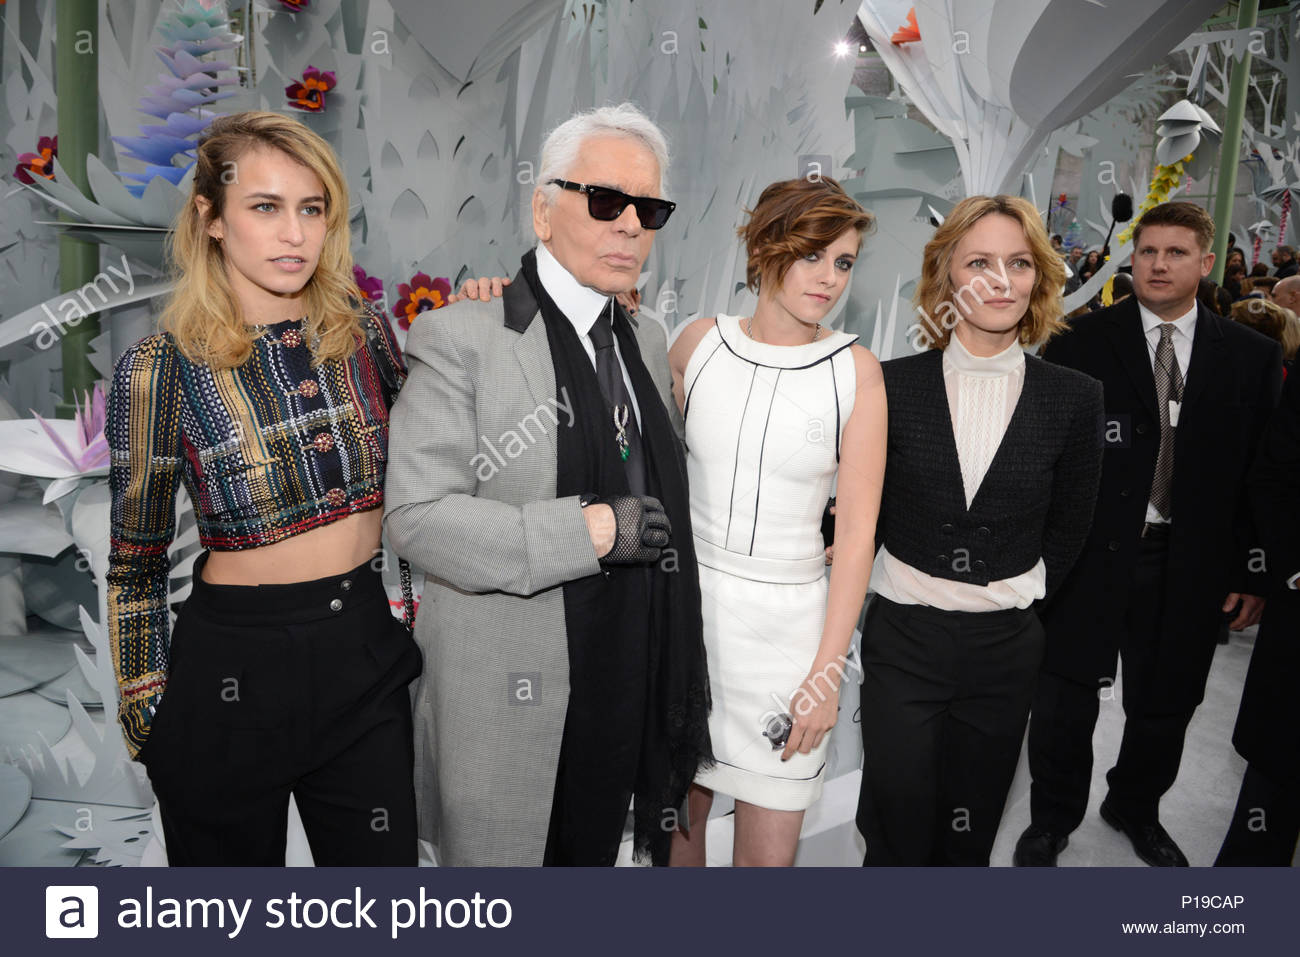 Alice Dellal, Karl Lagerfeld, Kirsten Stewart, Vanessa Paradis.     MANDATORY BYLINE TO READ INFPhoto.com ONLY    Alice Dellal attending the  Chanel show as ... 6c749c92aa1d